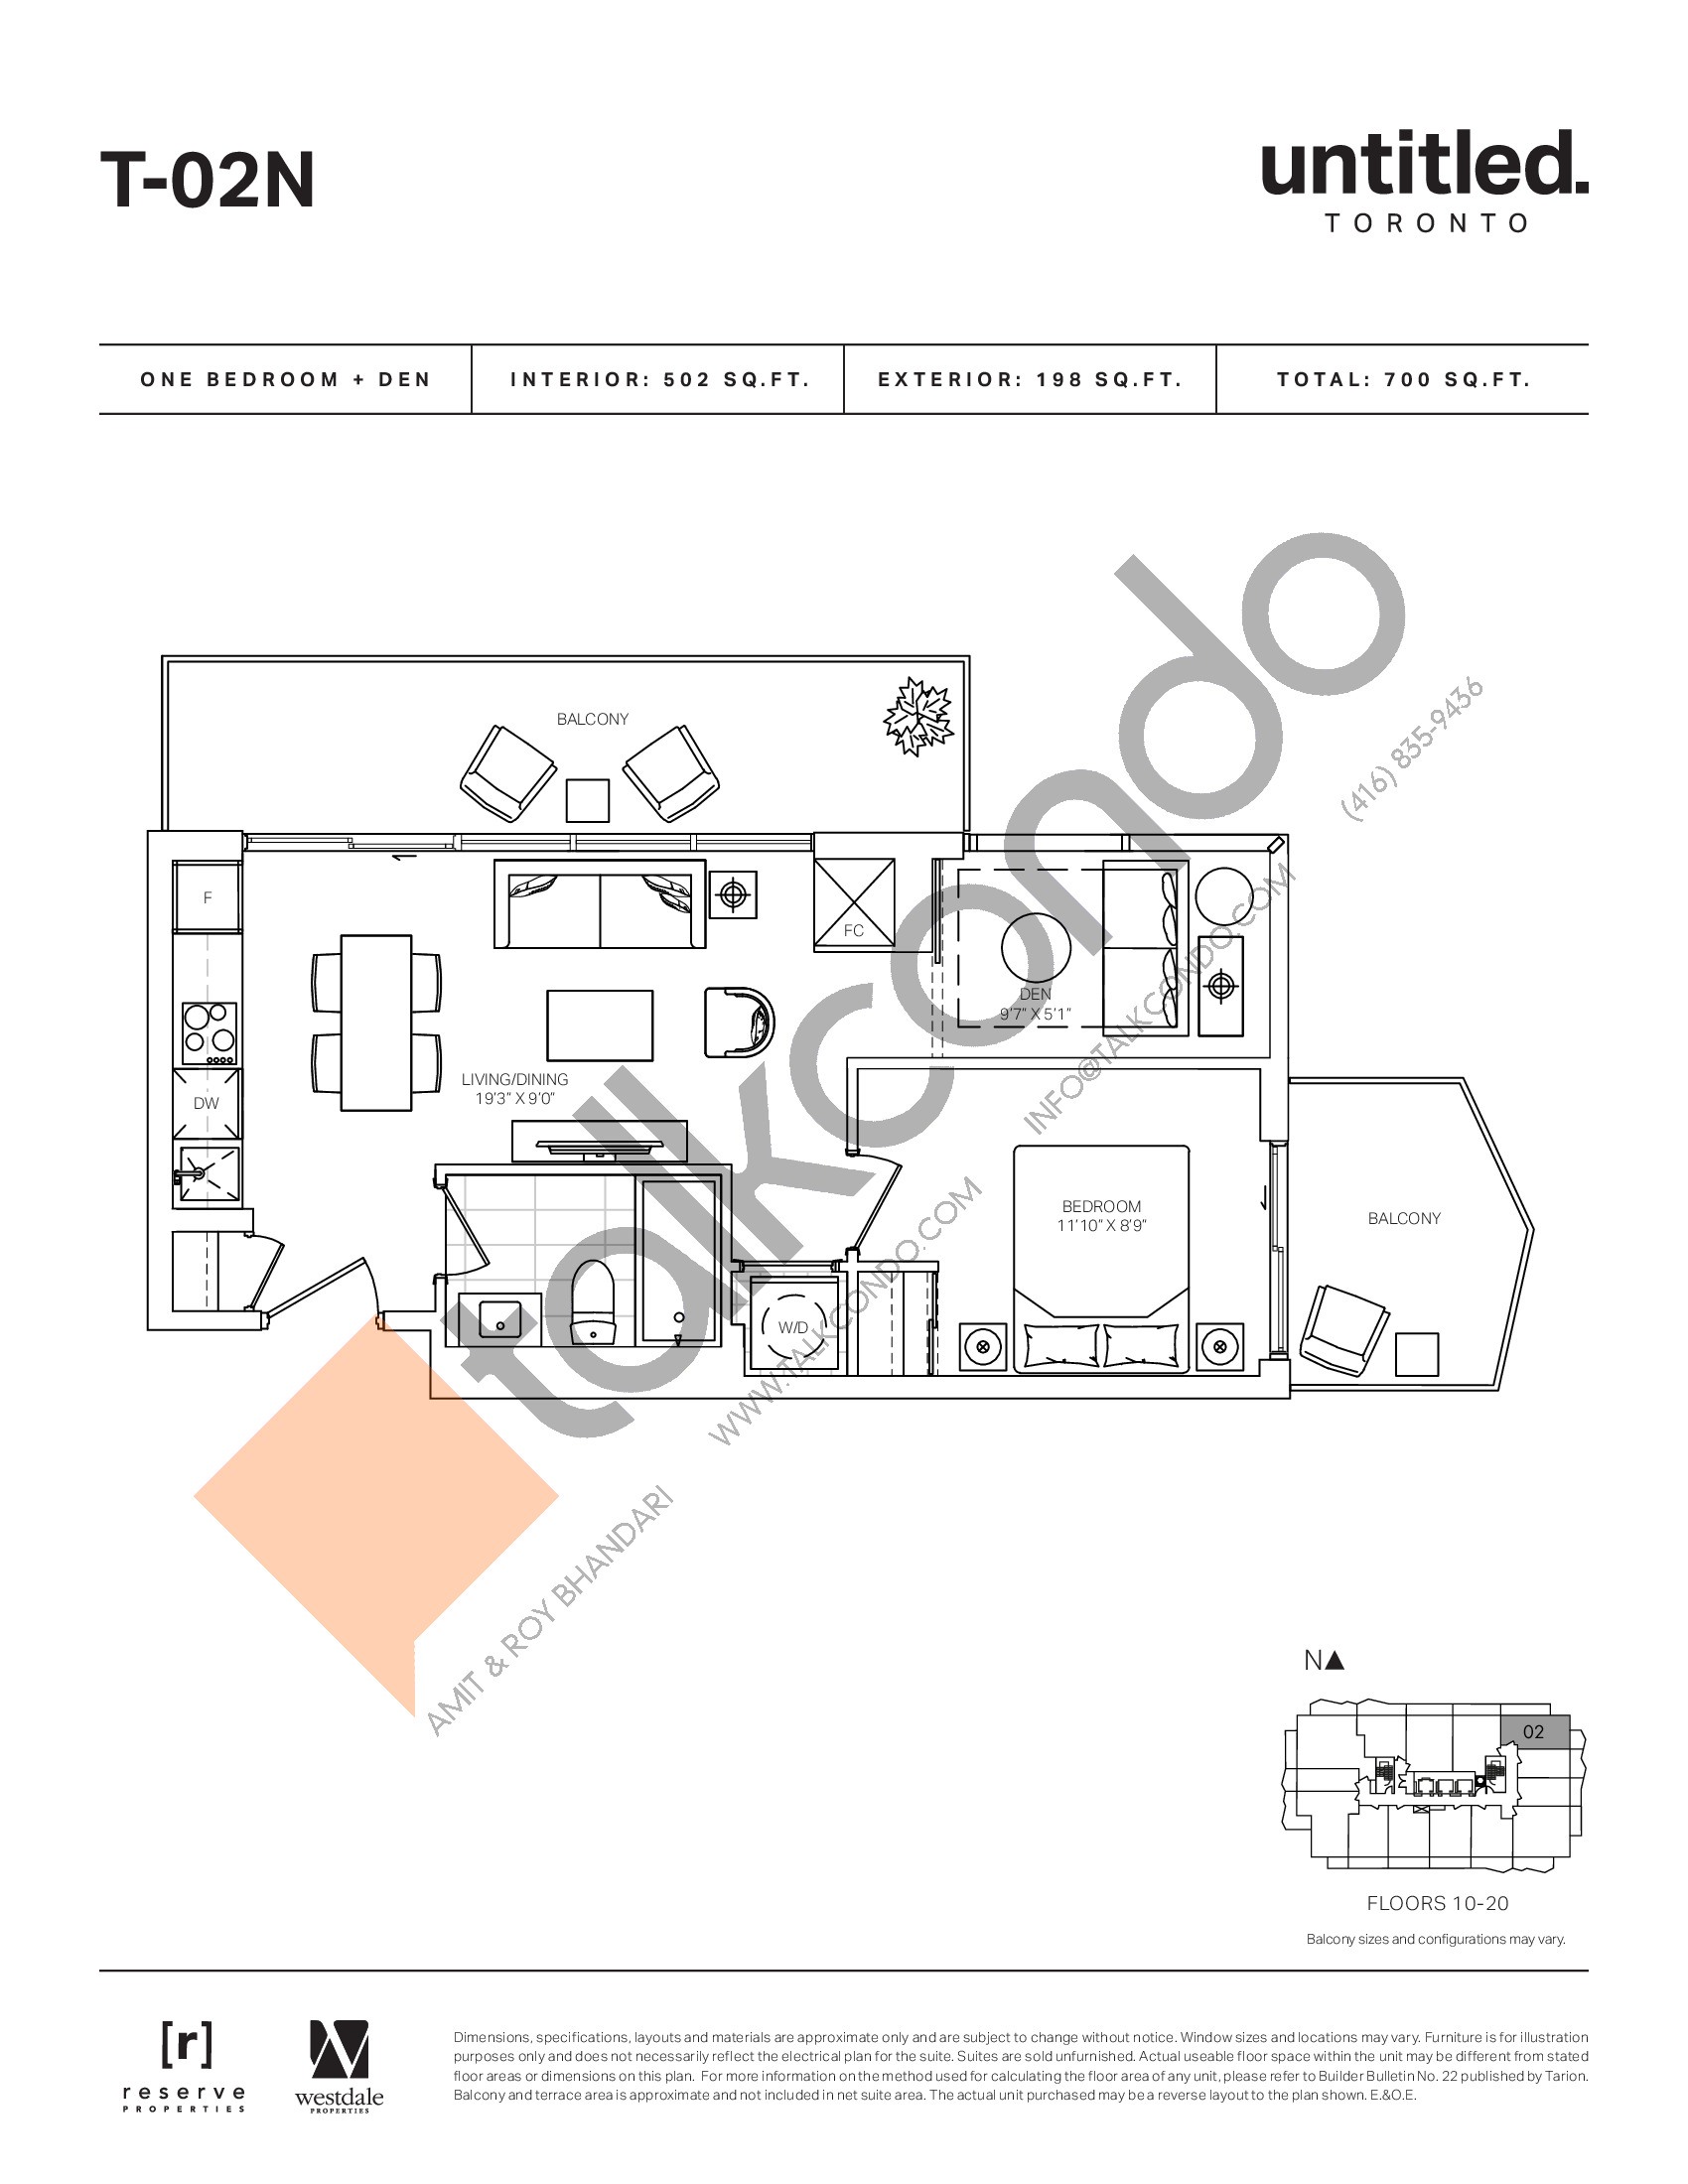 T-02N Floor Plan at Untitled North Tower Condos - 502 sq.ft